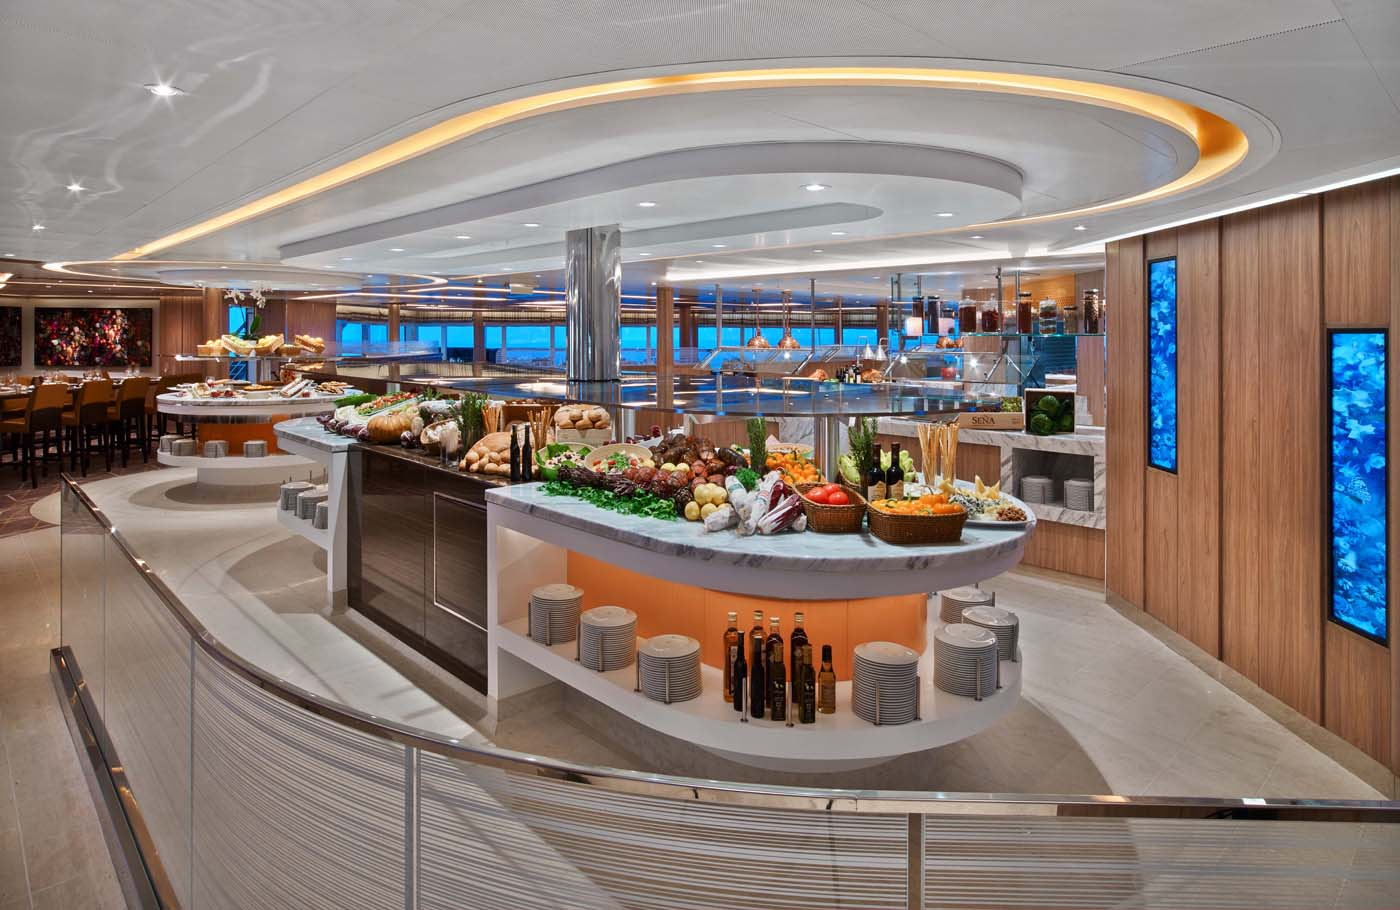 The Colonnade - Seabourn Encore